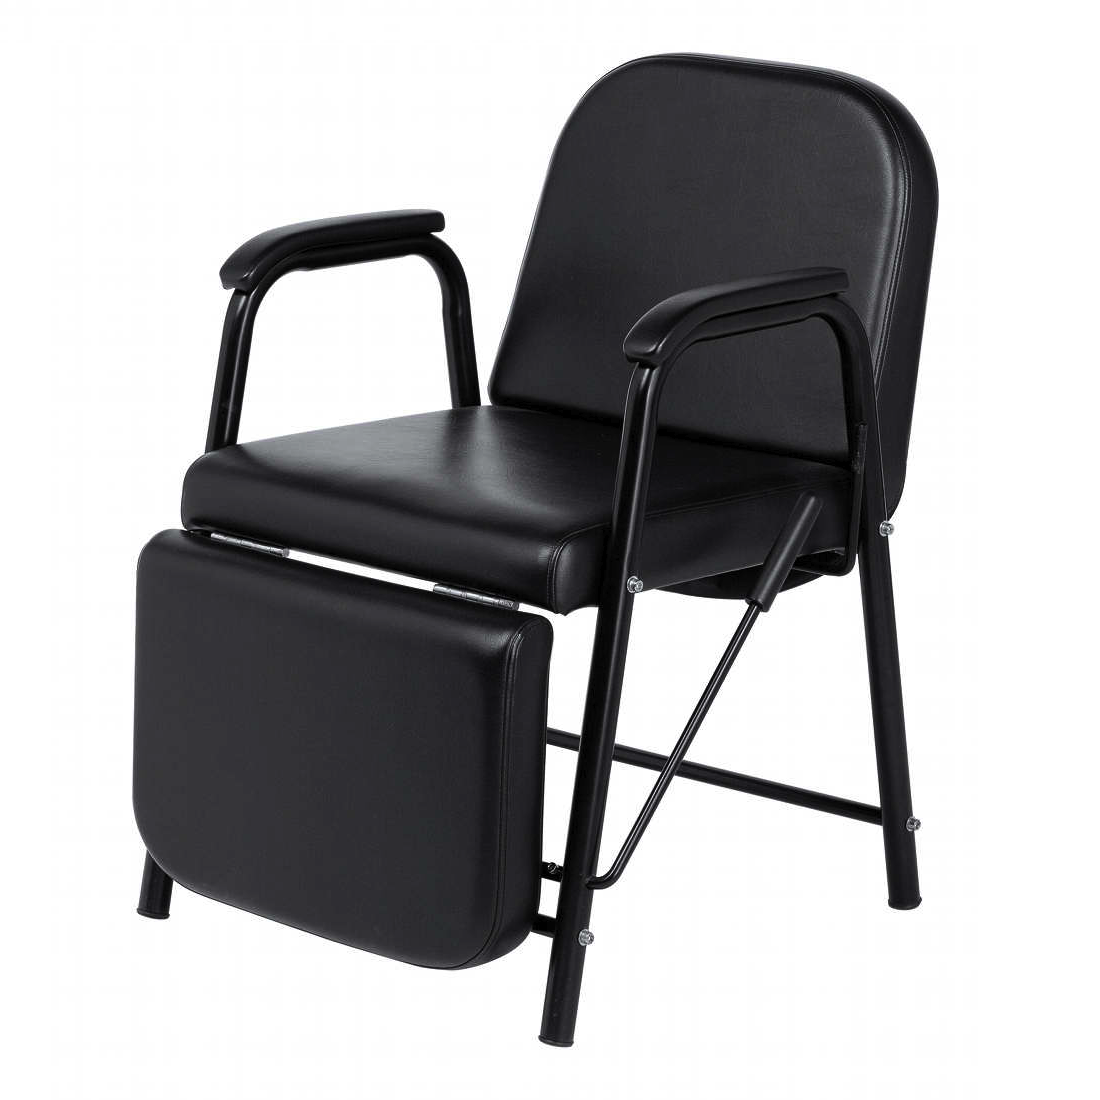 tilly shampoo chair